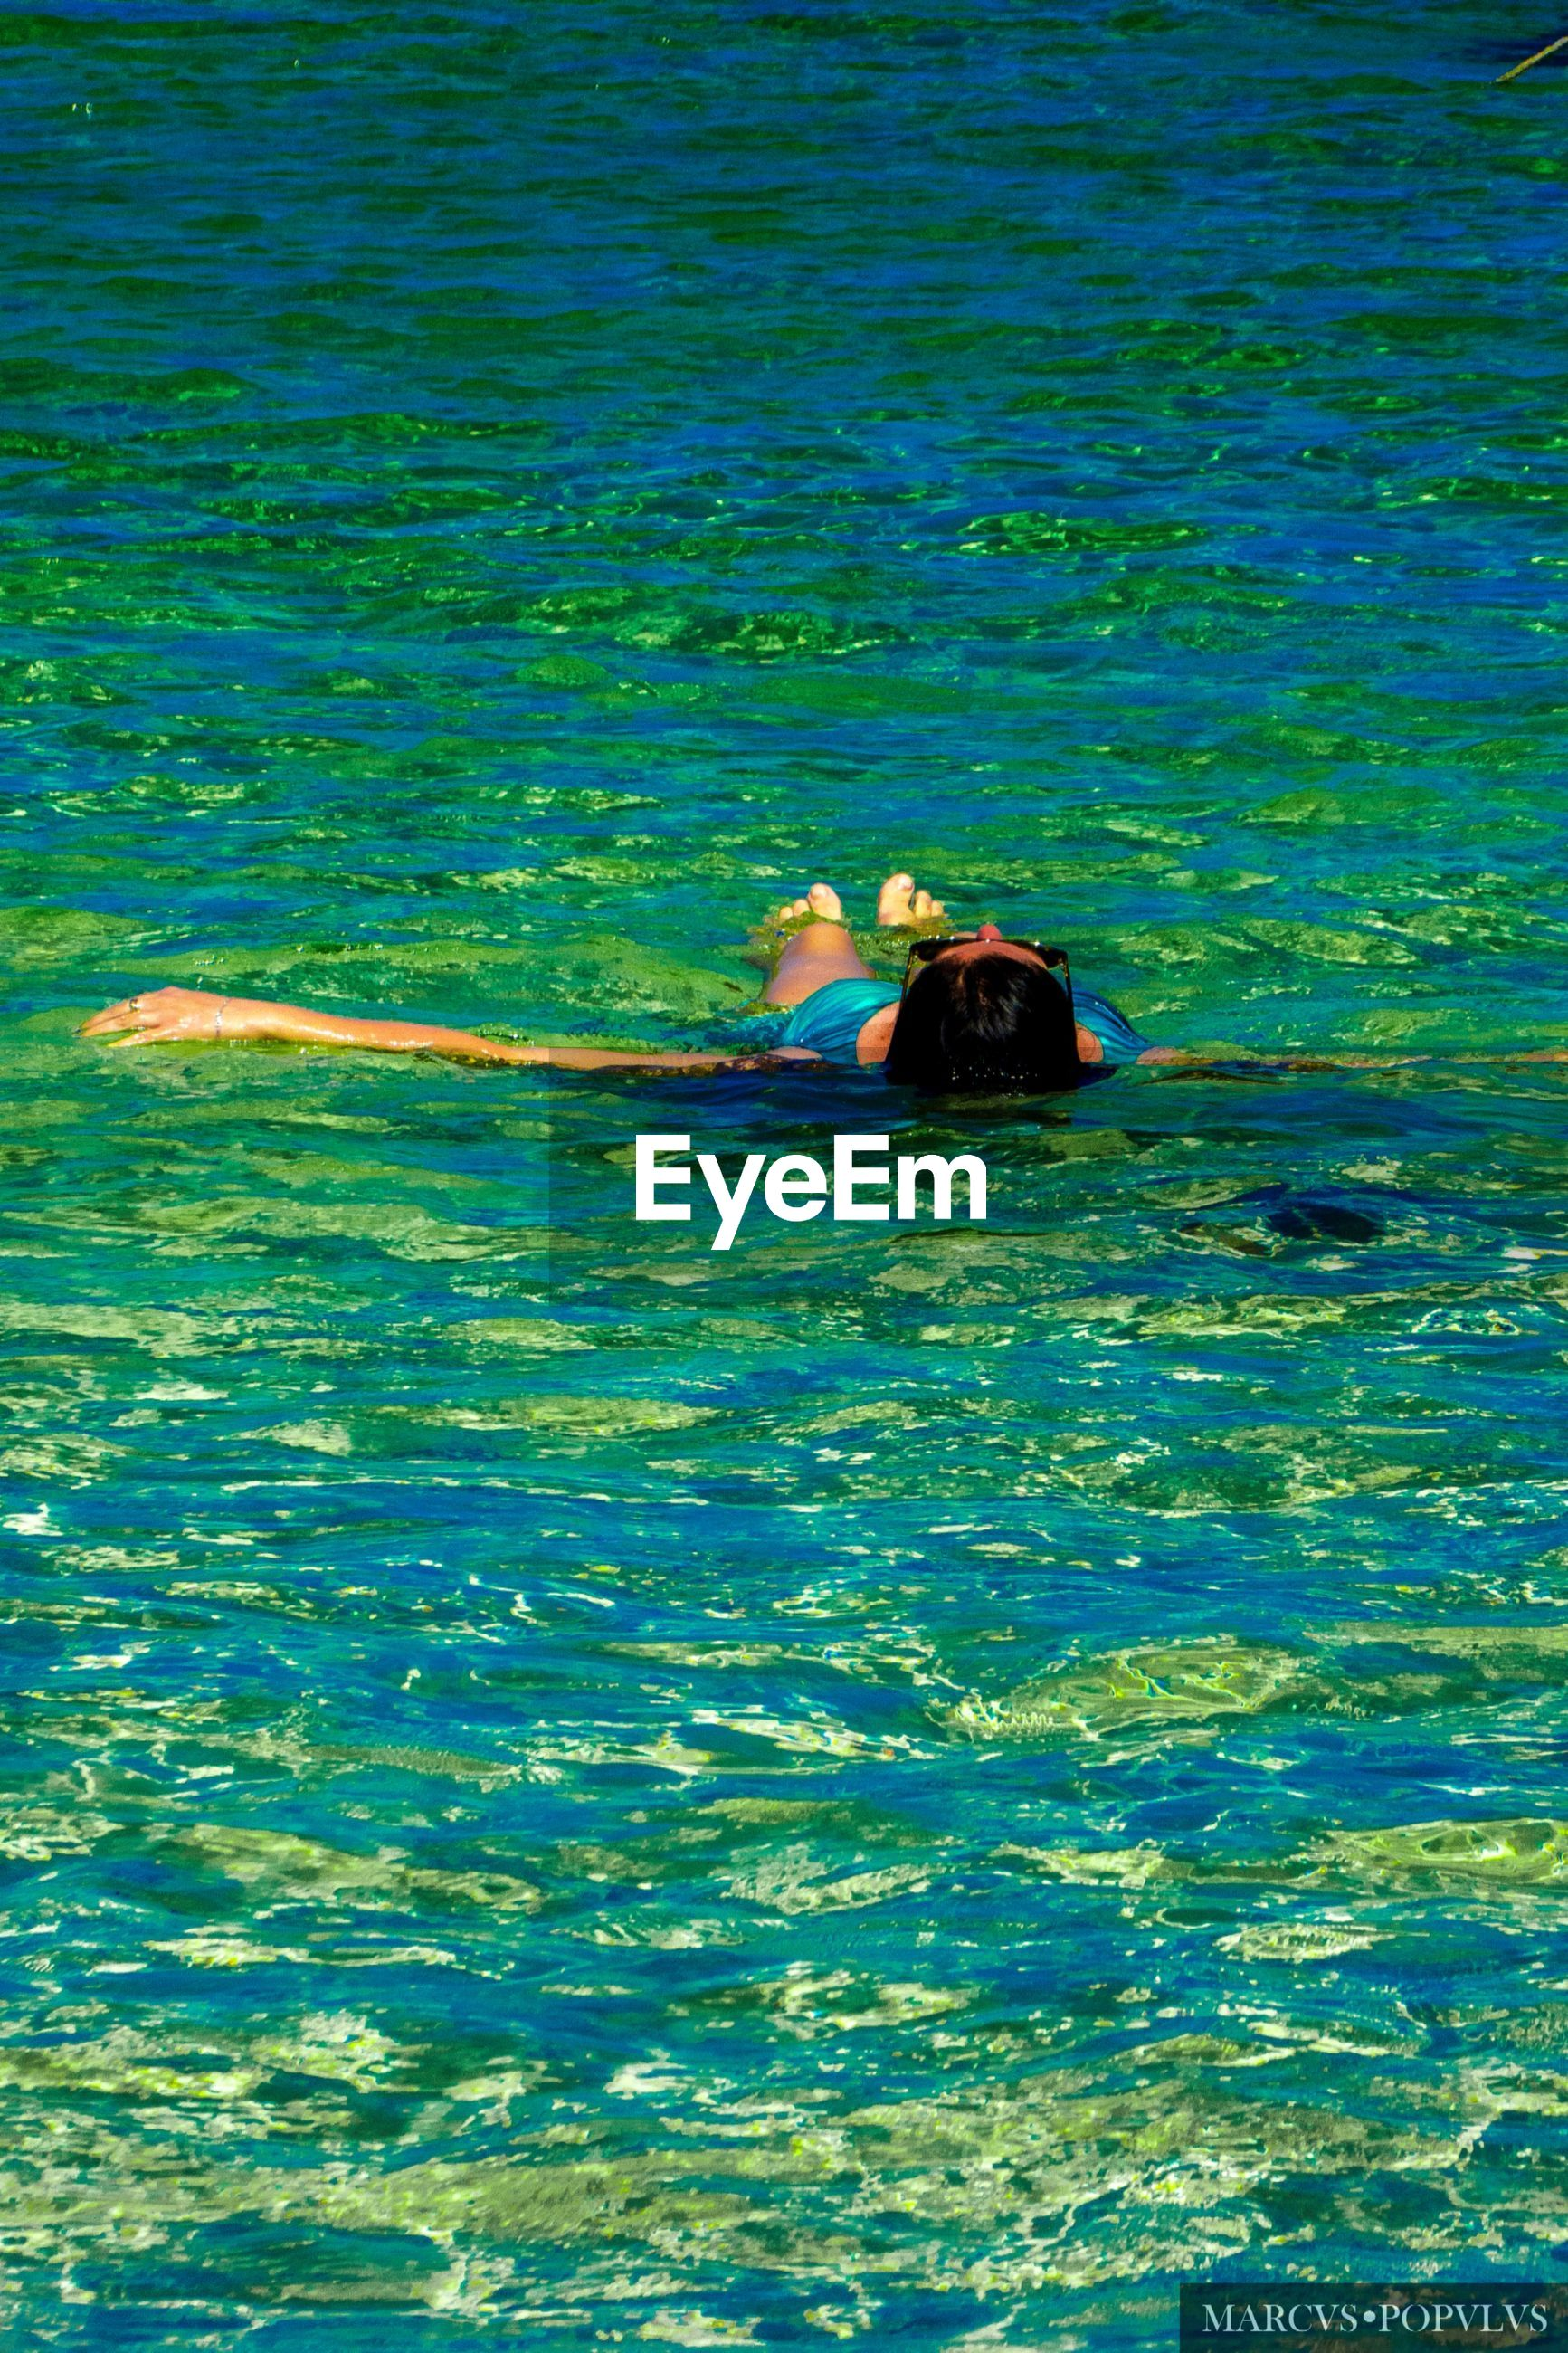 water, waterfront, real people, swimming, lifestyles, one person, leisure activity, sea, day, nature, women, adult, outdoors, blue, relaxation, trip, vacations, holiday